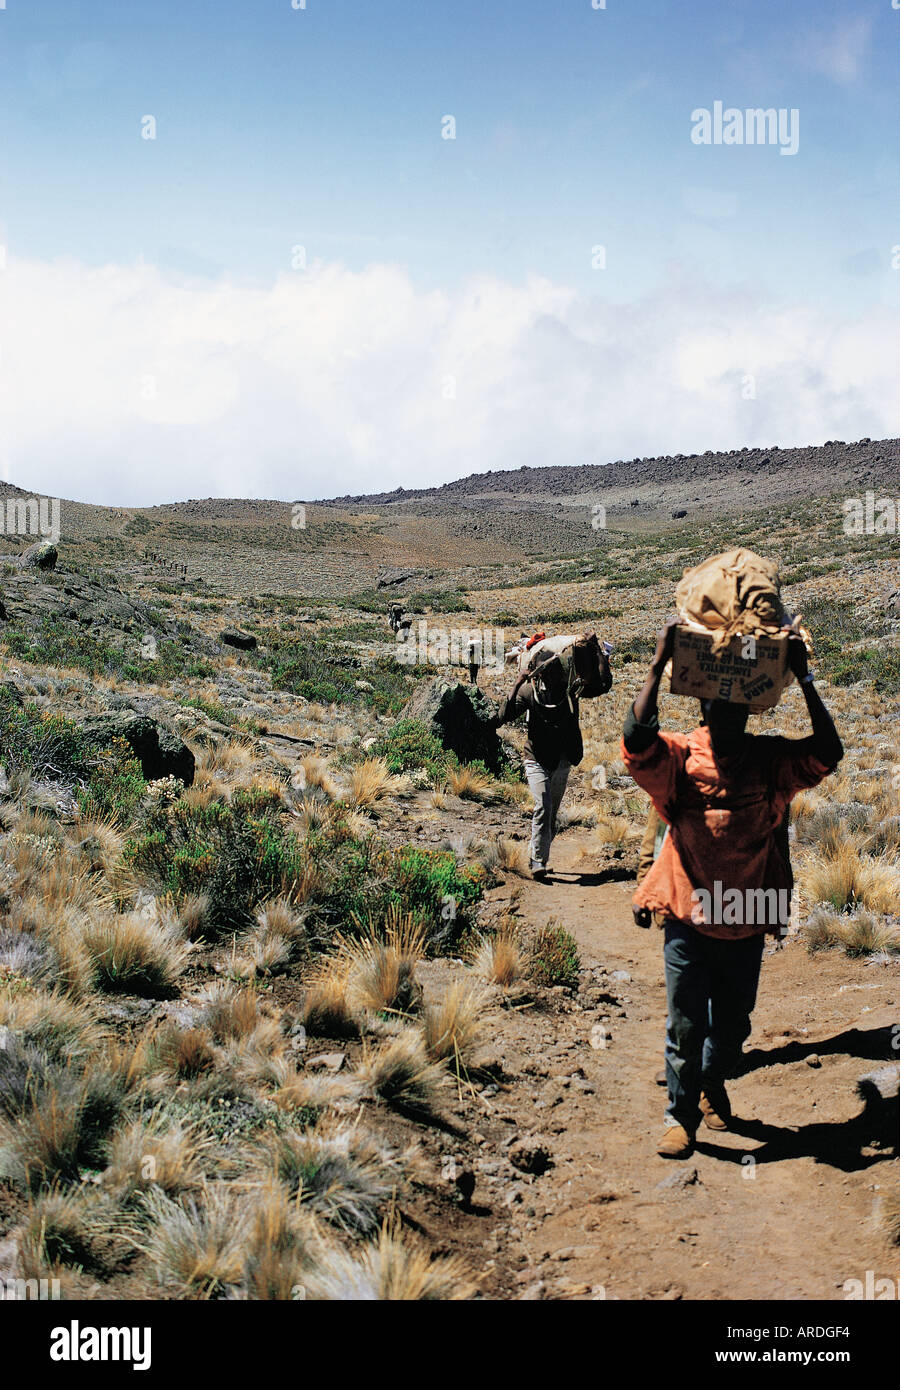 Porters carrying head loads up Kilimanjaro Tanzania - Stock Image